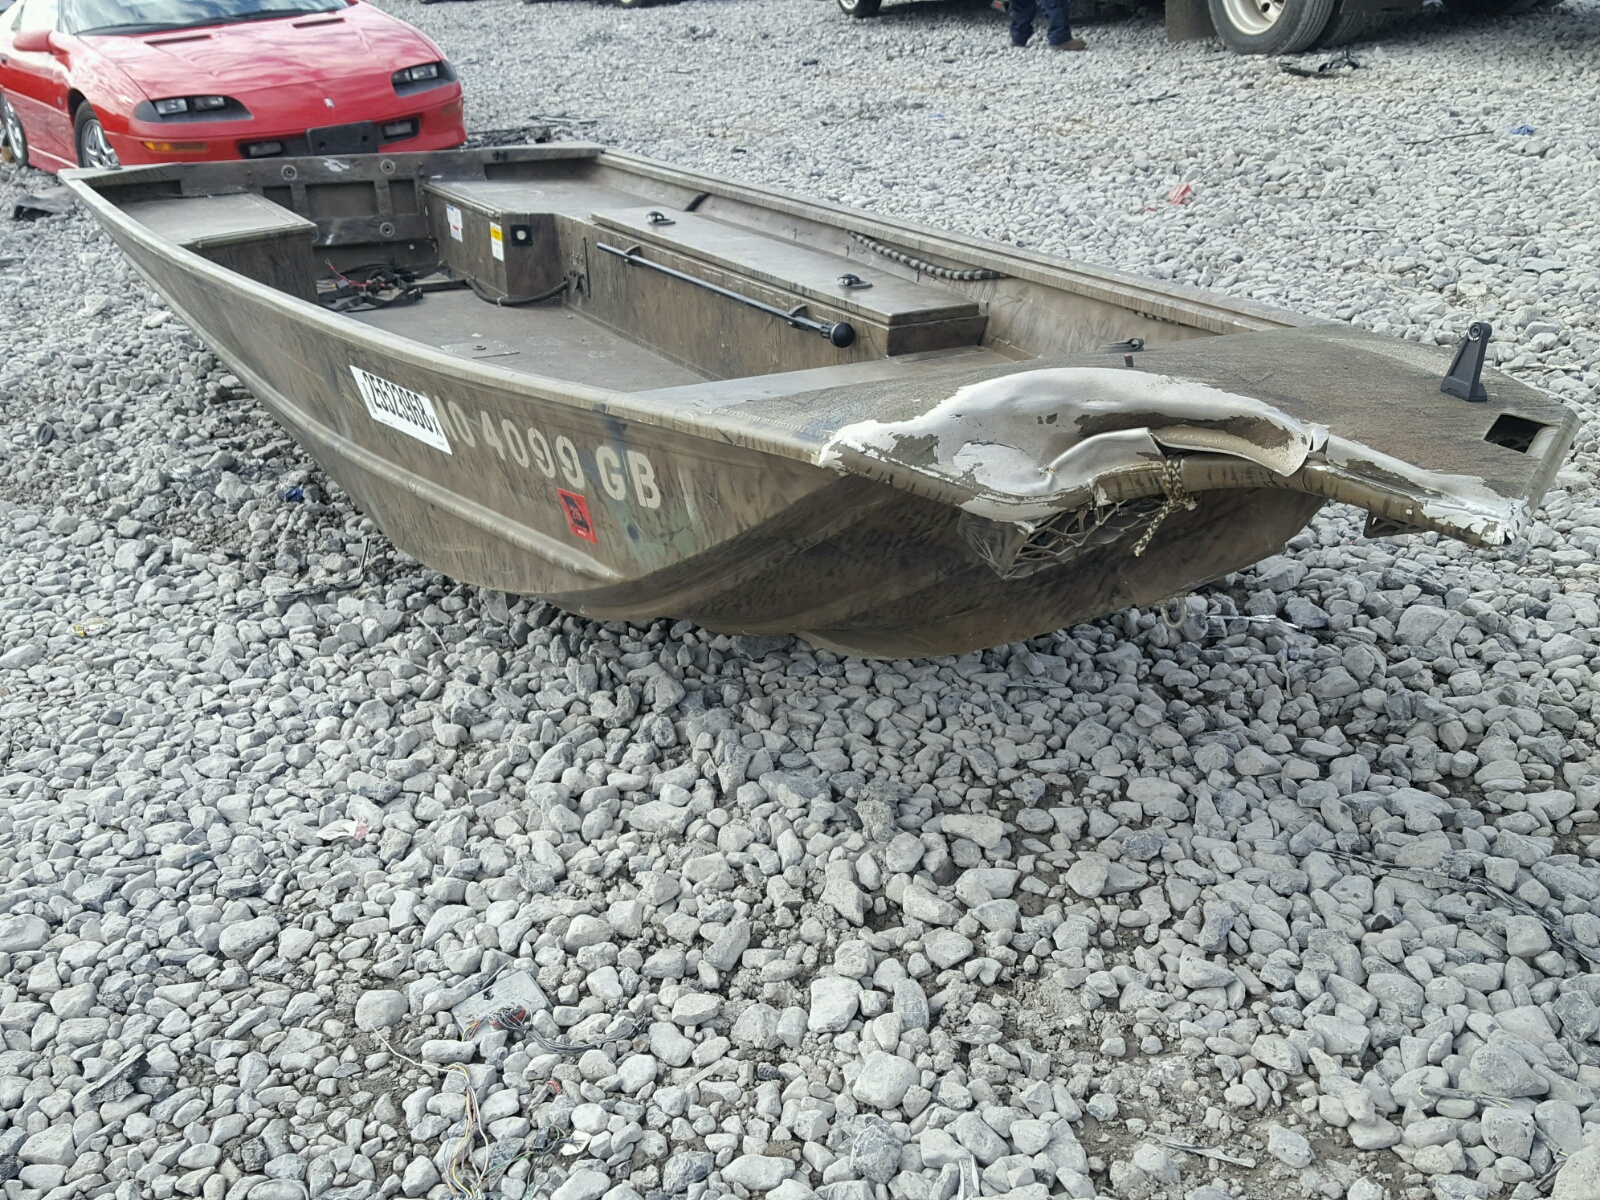 Car Trailers For Sale Raleigh Nc >> Auto Auction Ended on VIN: GEN09749C414 2014 GBOA MARINE/TRL in NC - RALEIGH